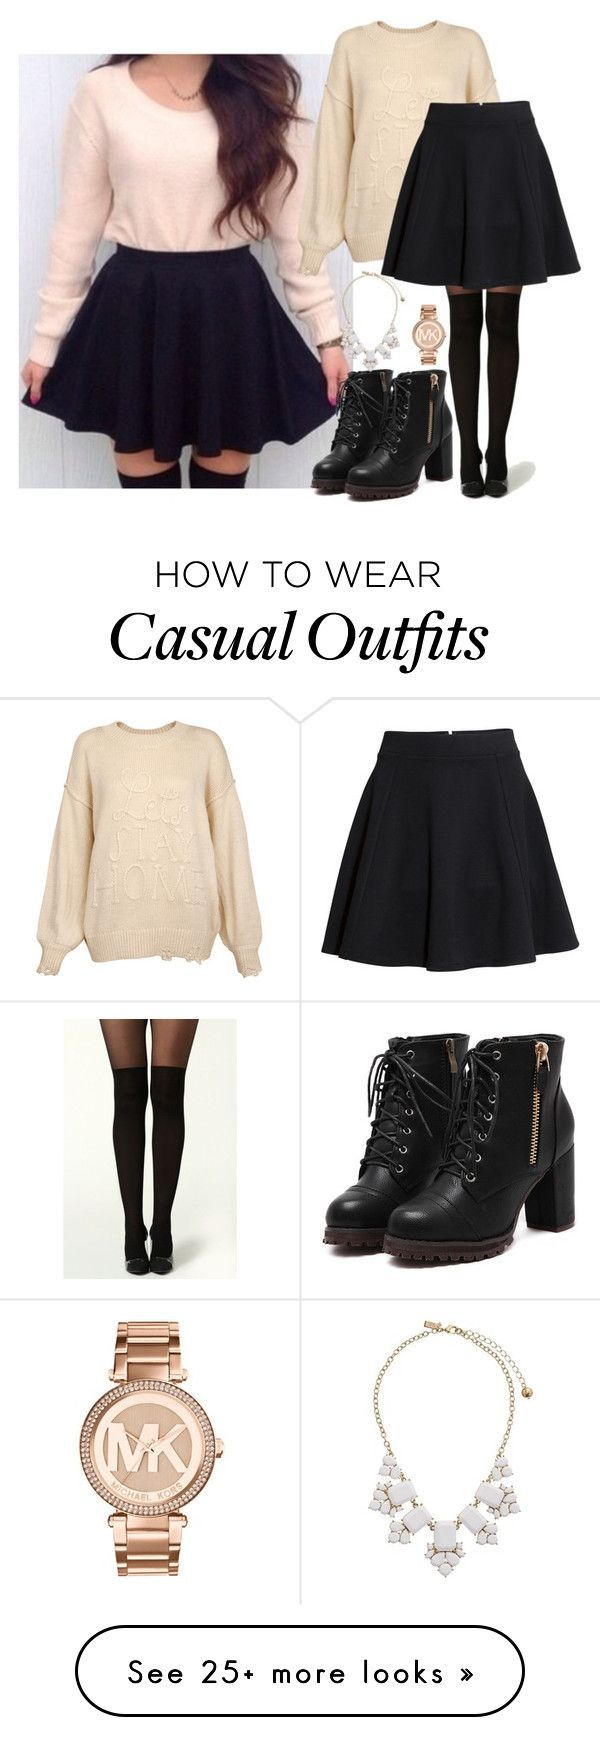 """Casual"" by chap15906248 on Polyvore featuring Wildfox, H&M, Michael Kors and Kate Spade"